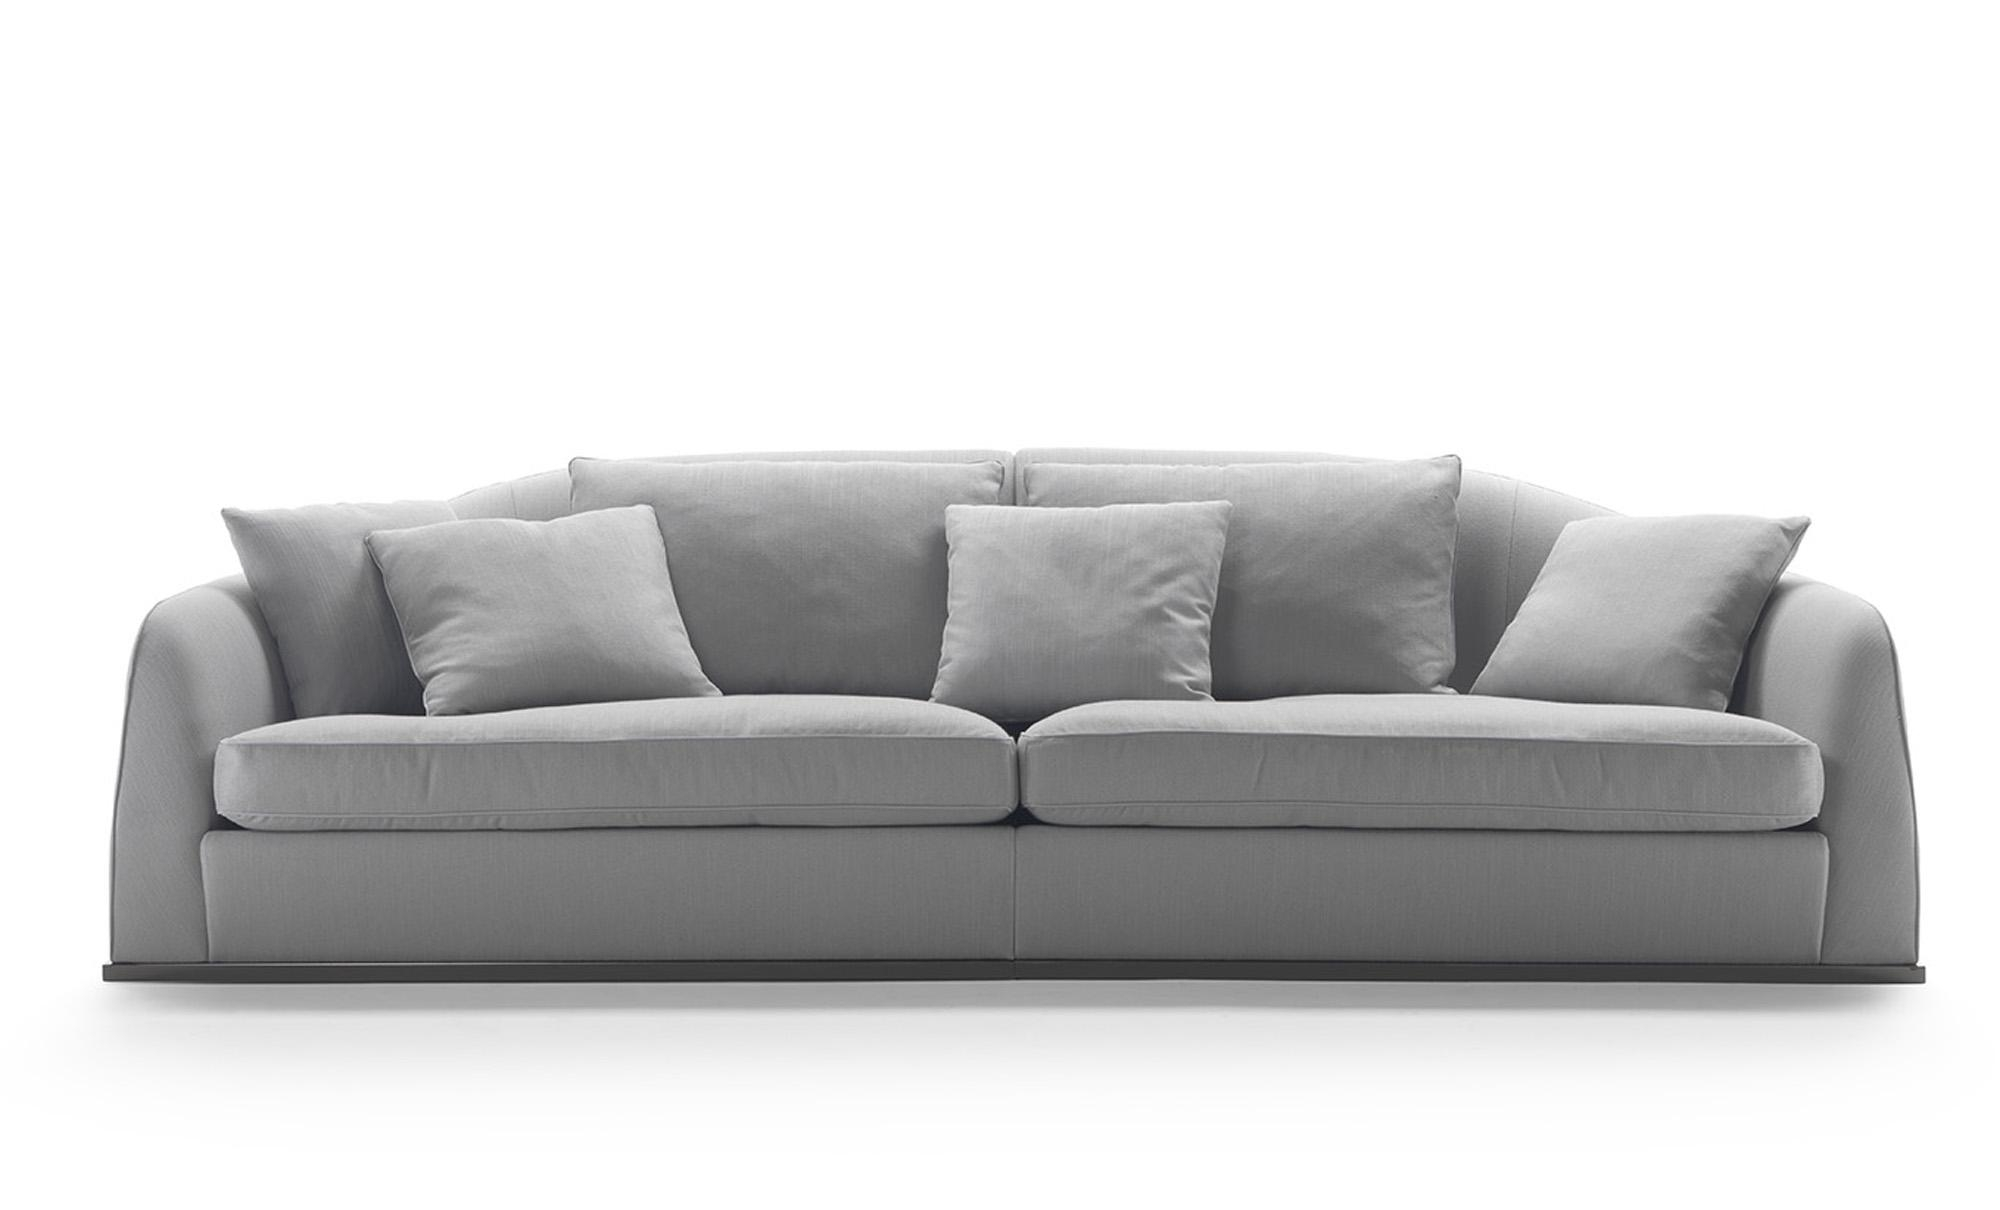 Flexform Mood Furniture – Fanuli Furniture For Flexform Sofas (Image 8 of 20)